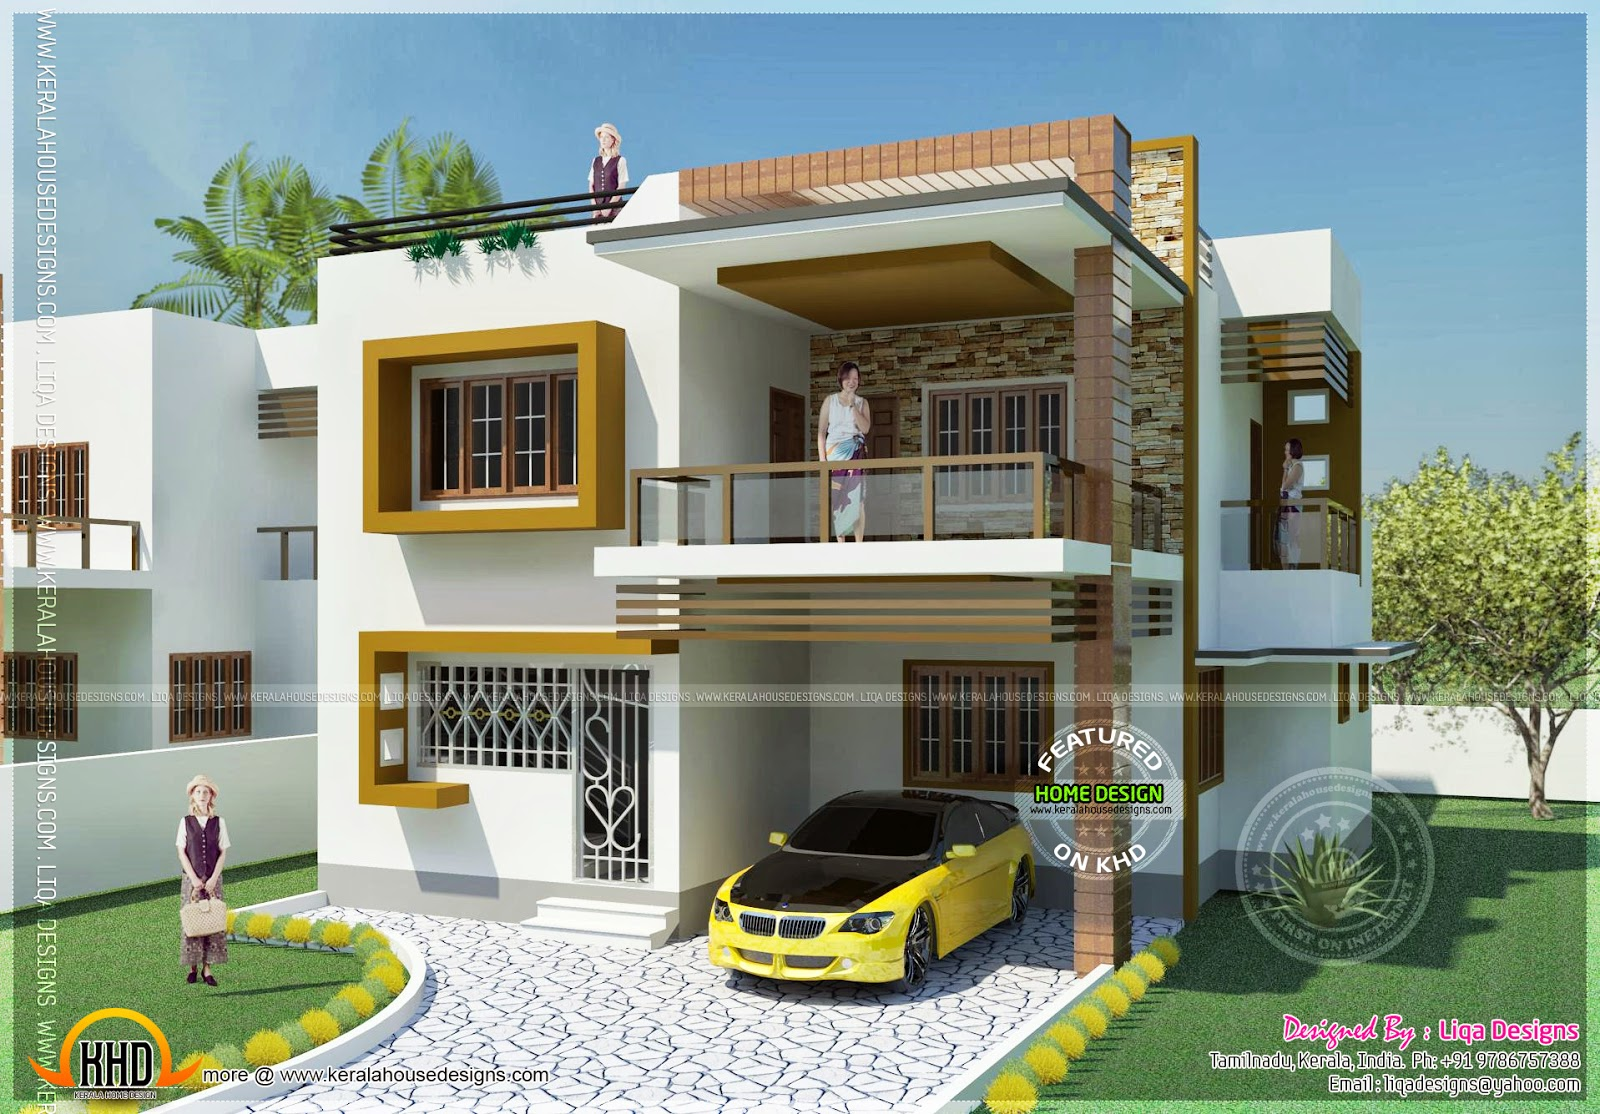 Double storied tamilnadu house design kerala home design for Home designs in tamilnadu